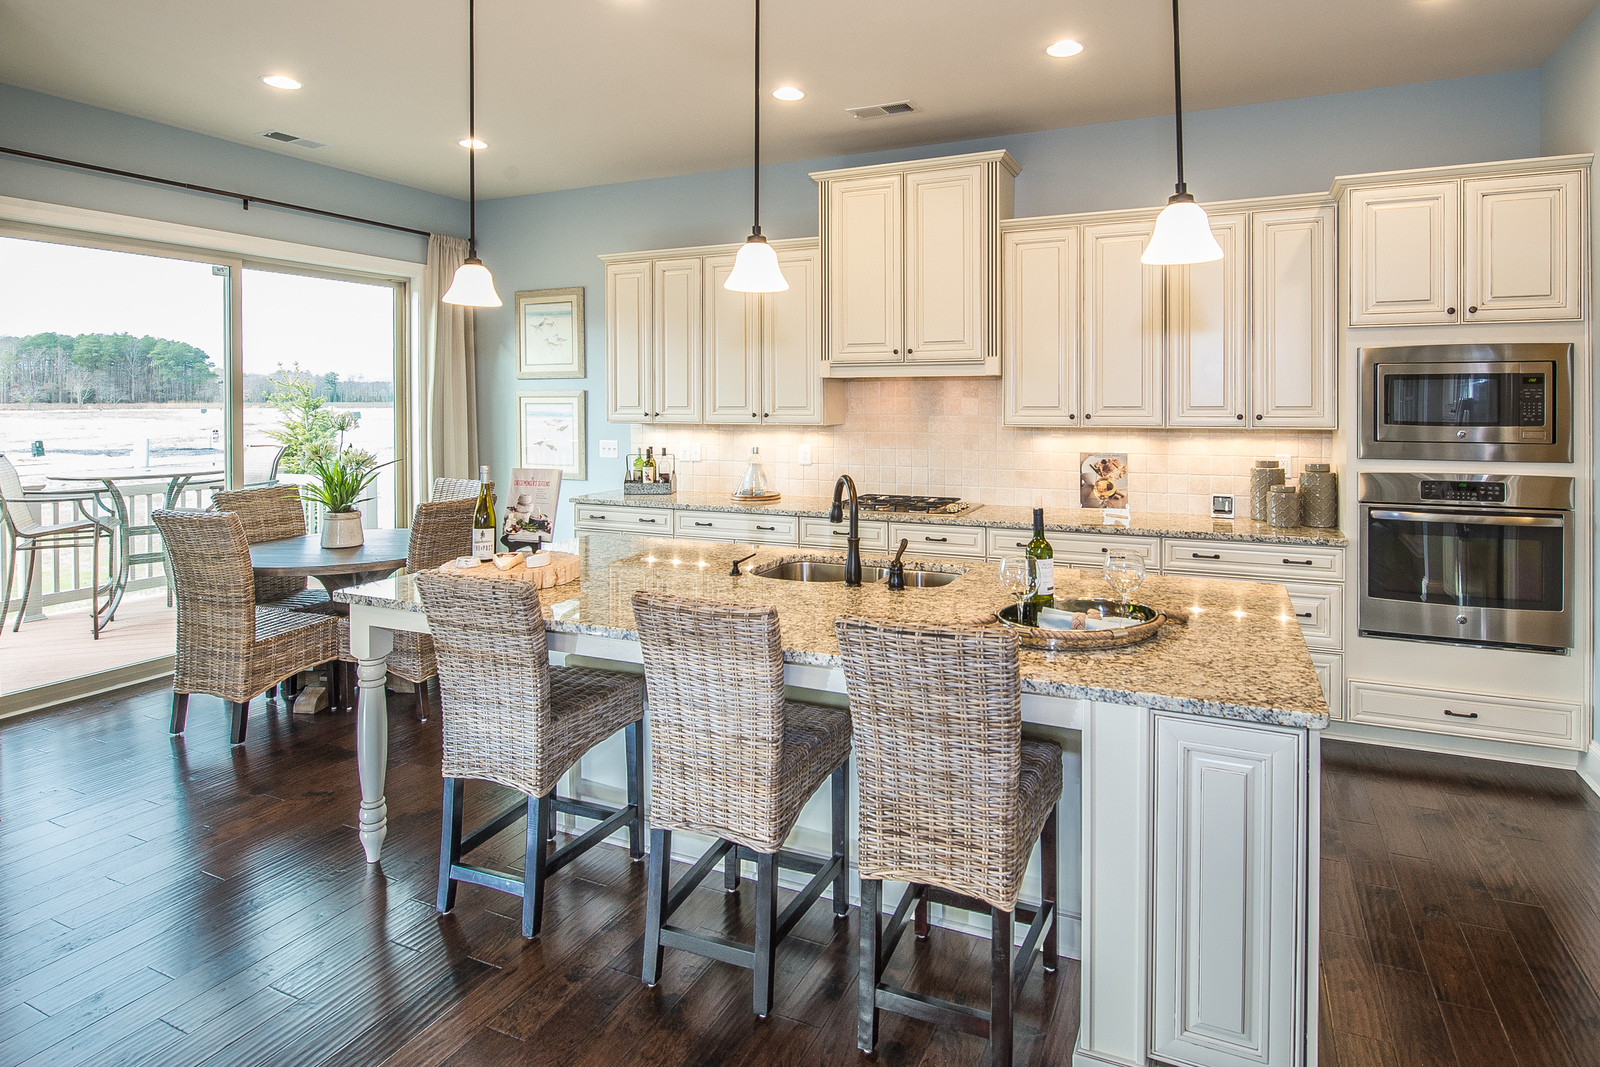 New Seabrook Home Model At Redden Ridge Rehoboth Beach In